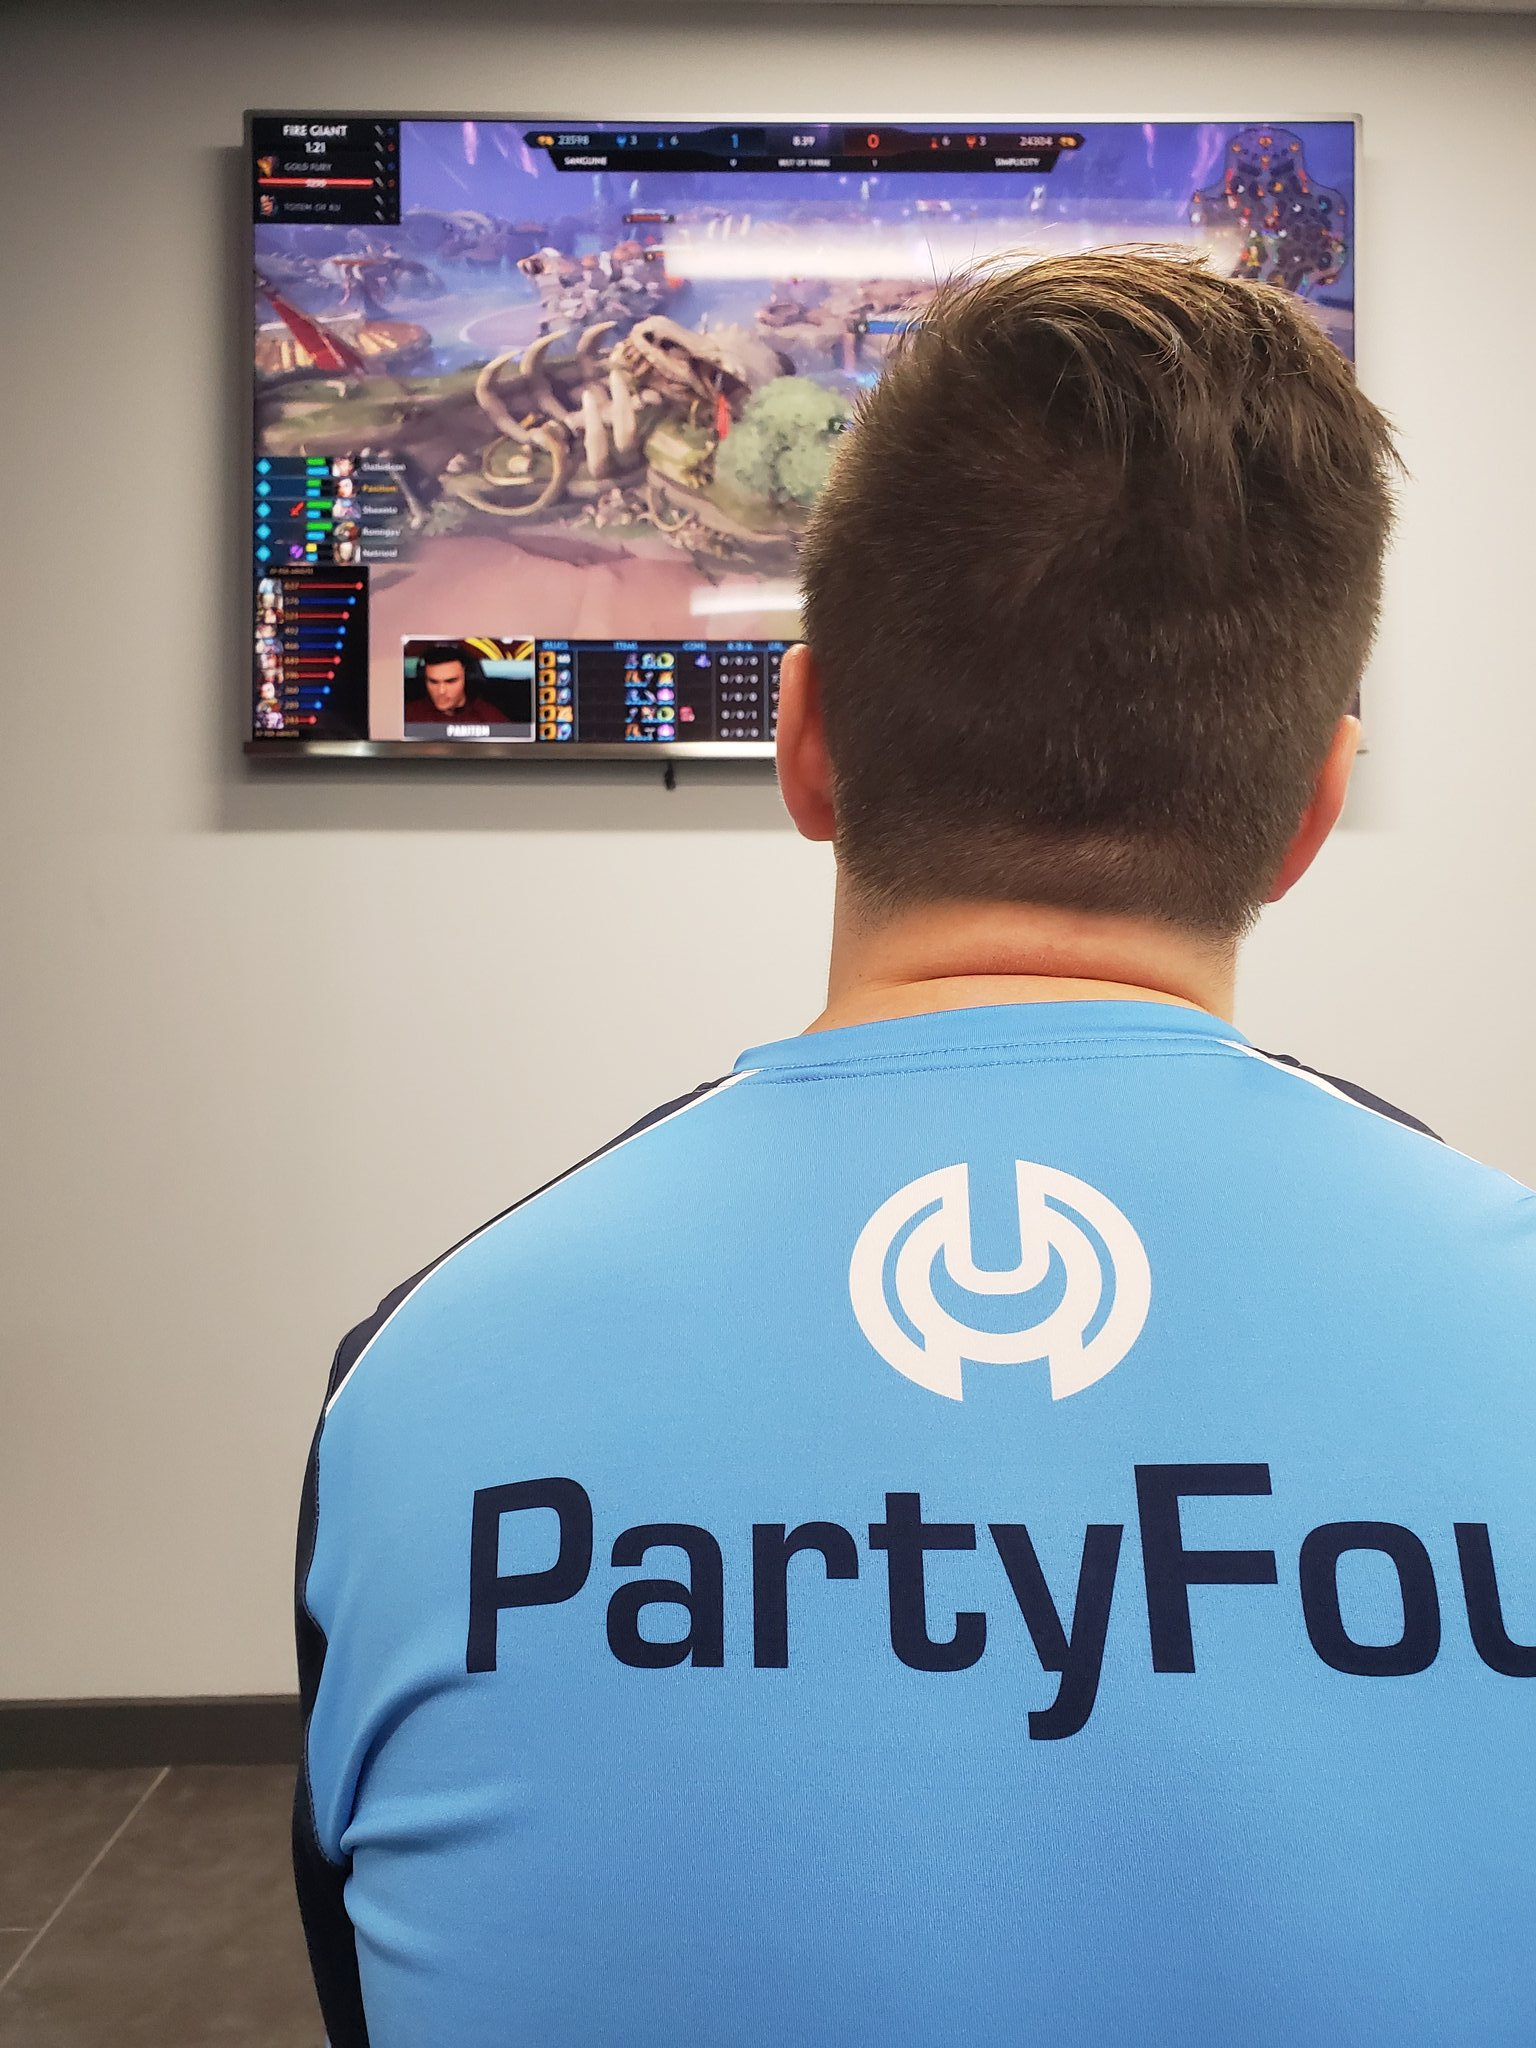 """Congratulations to PartyFoul on his new role as the """"Director of Esports"""" at Simplicity -"""